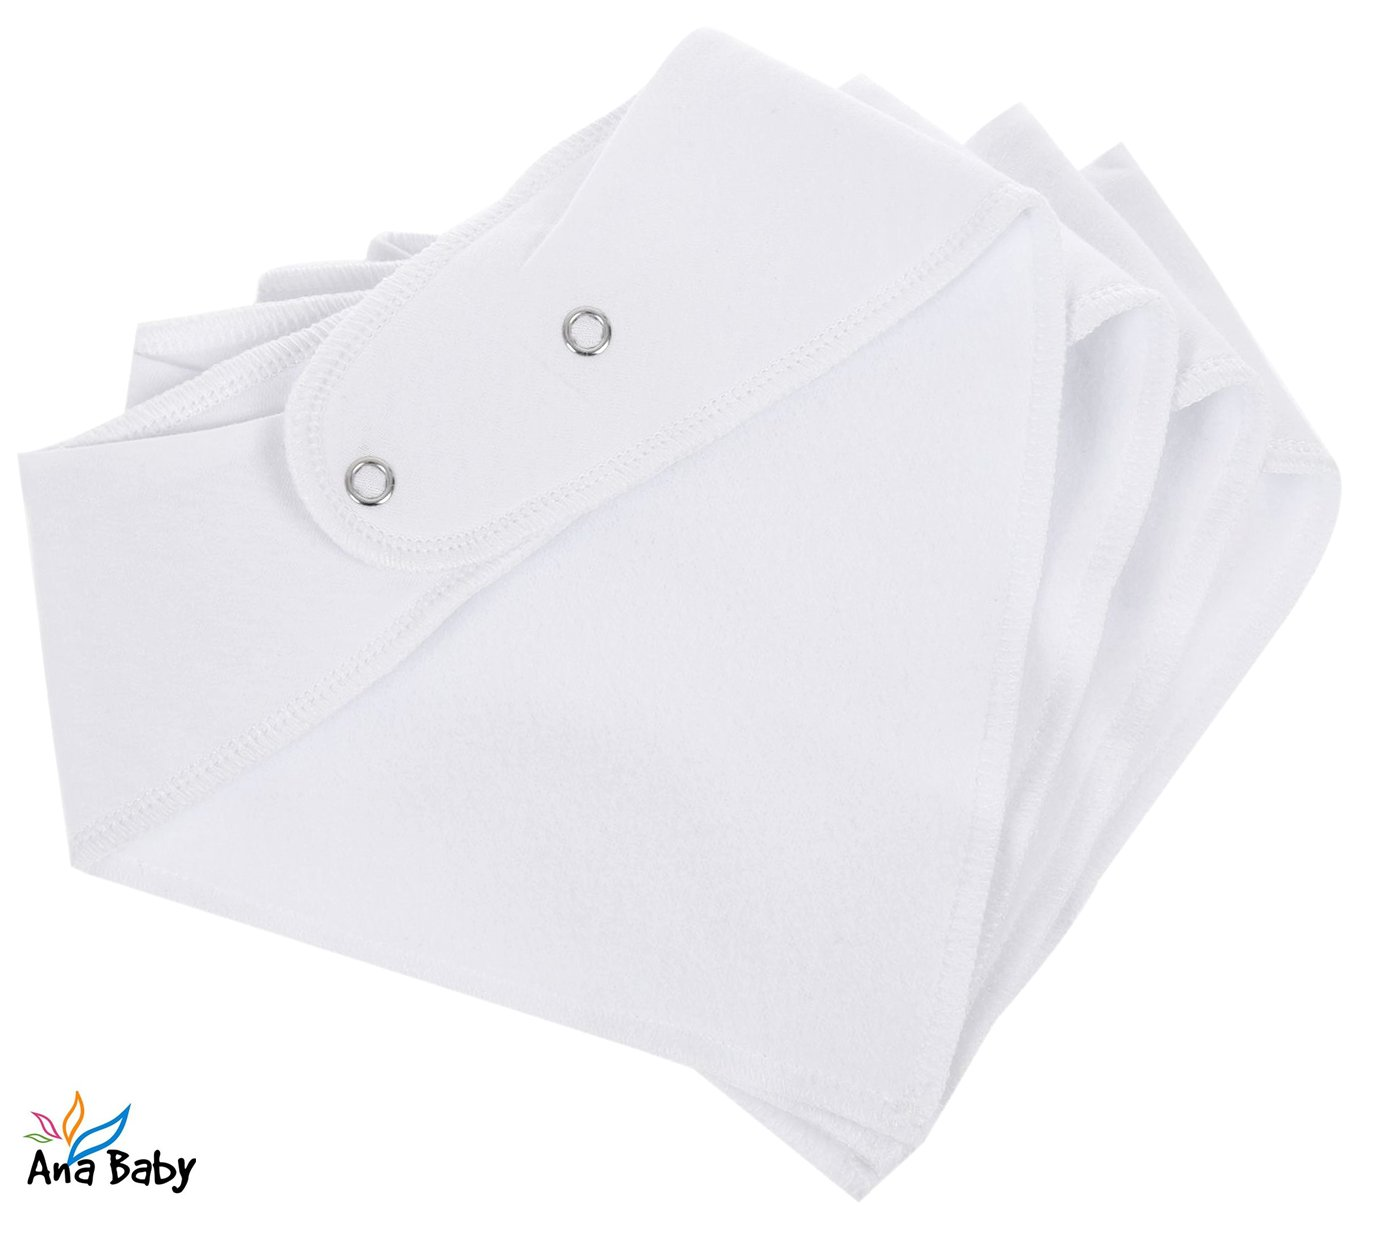 10-Pack Baby Bandana Drool Bibs Plain White for Drooling and Teething Hypoallergenic Unisex Bibs for Baby Boys /& Girls 100/% Organic Cotton Baby Shower Gift Set by Ana Baby Soft and Absorbent